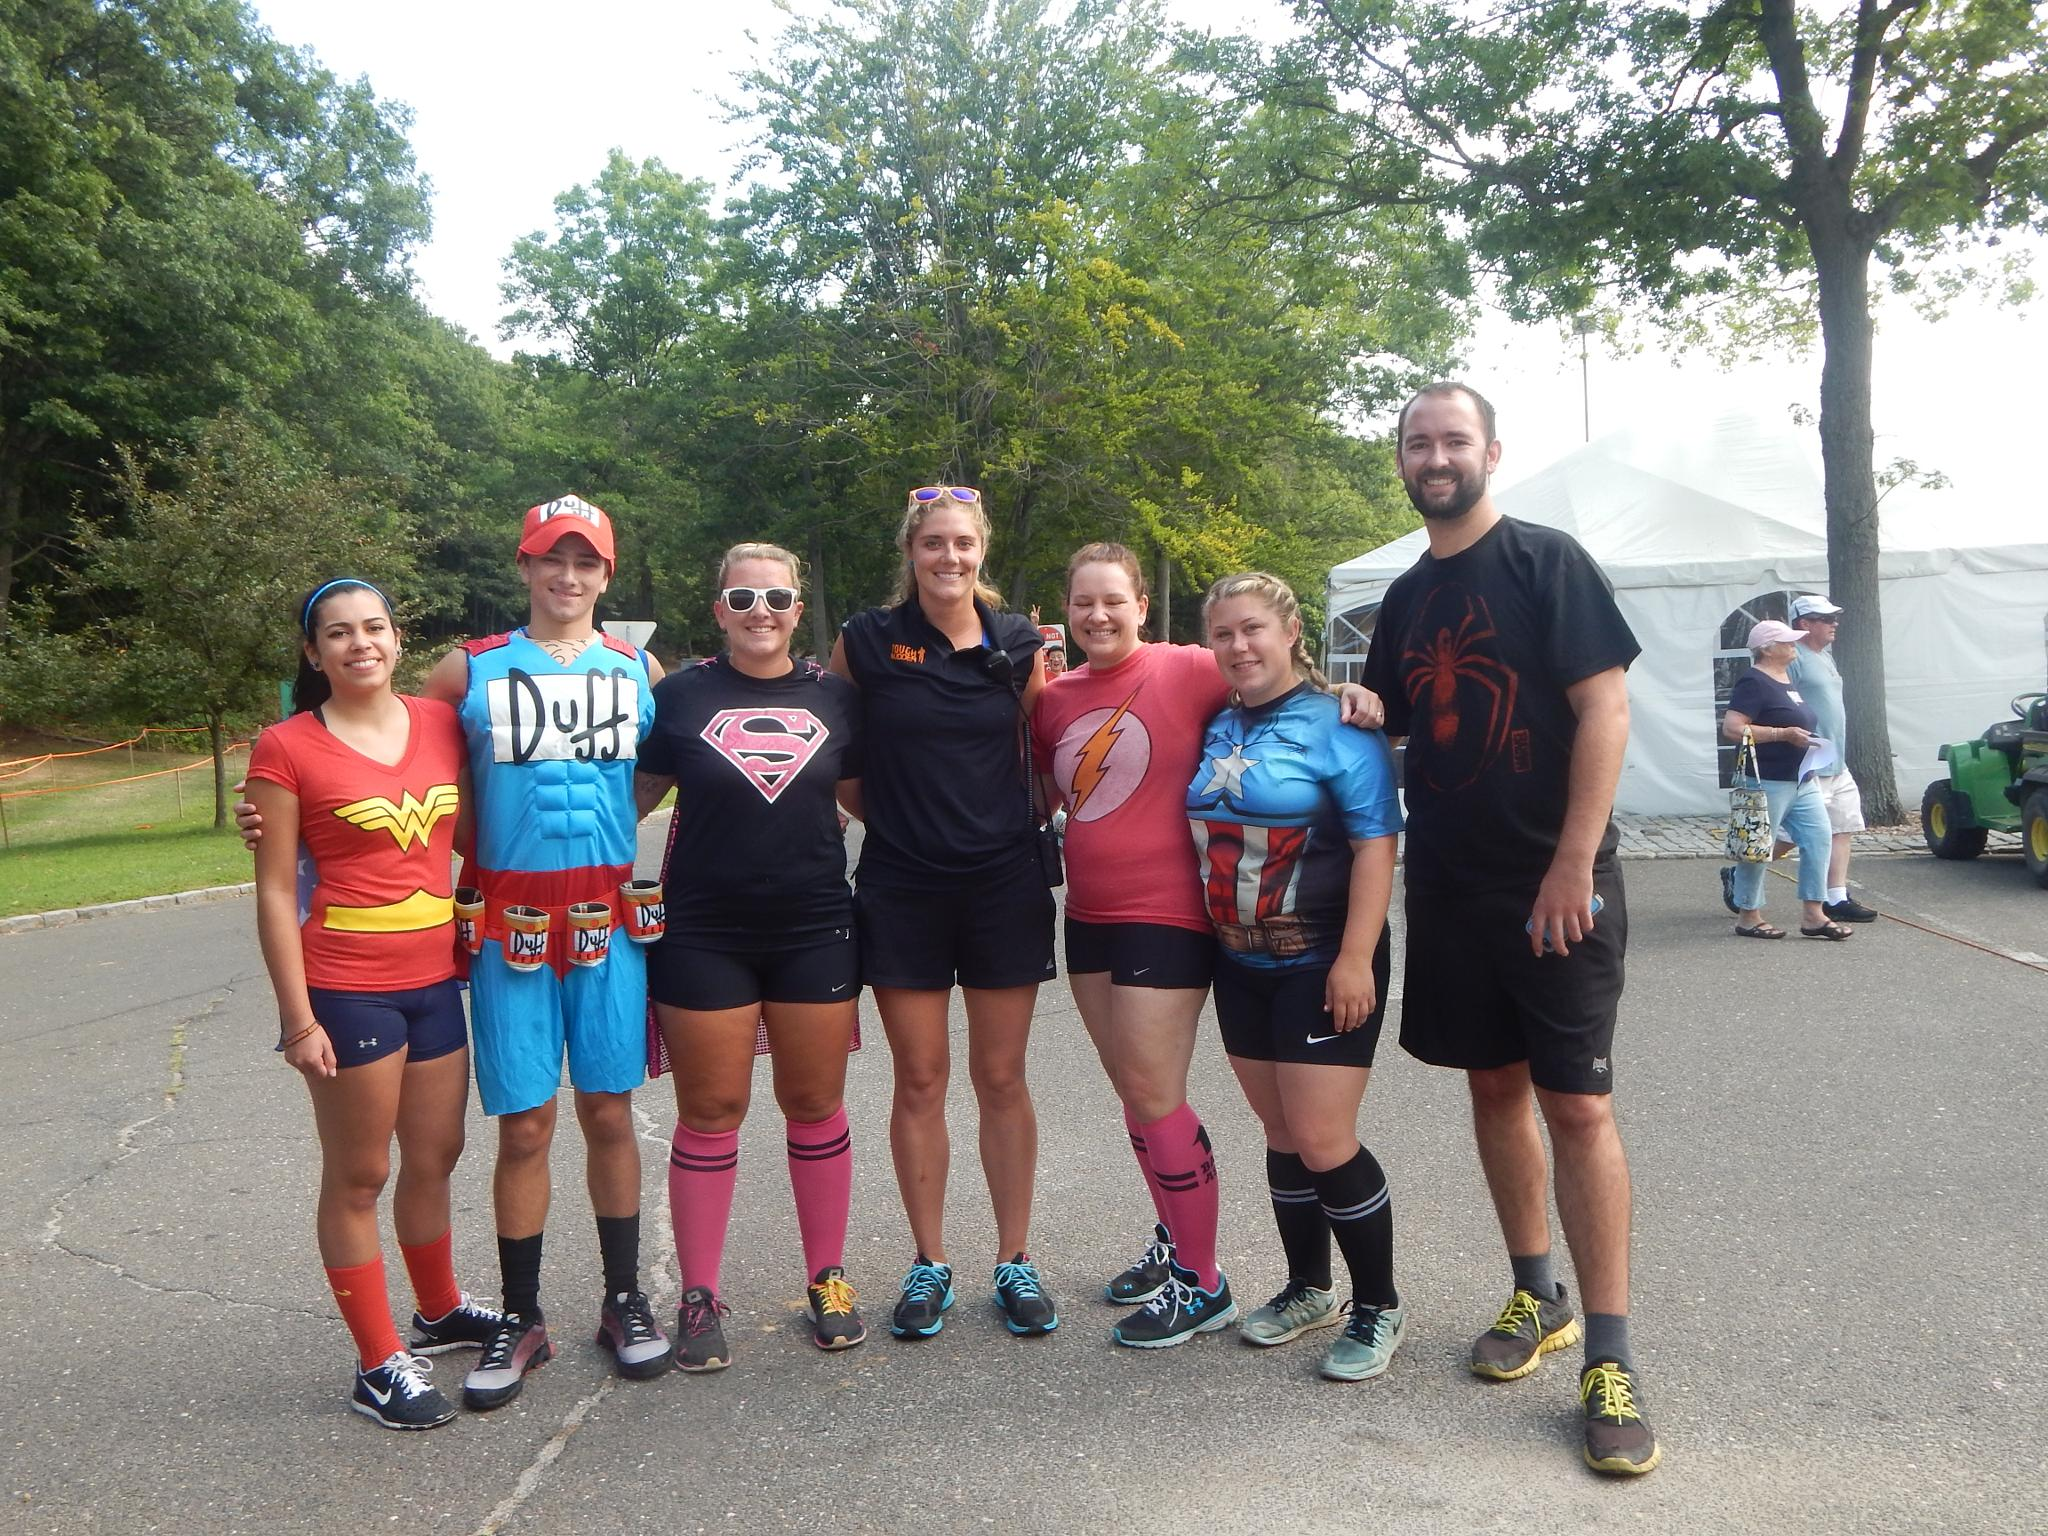 Our Mudder People by mythree03